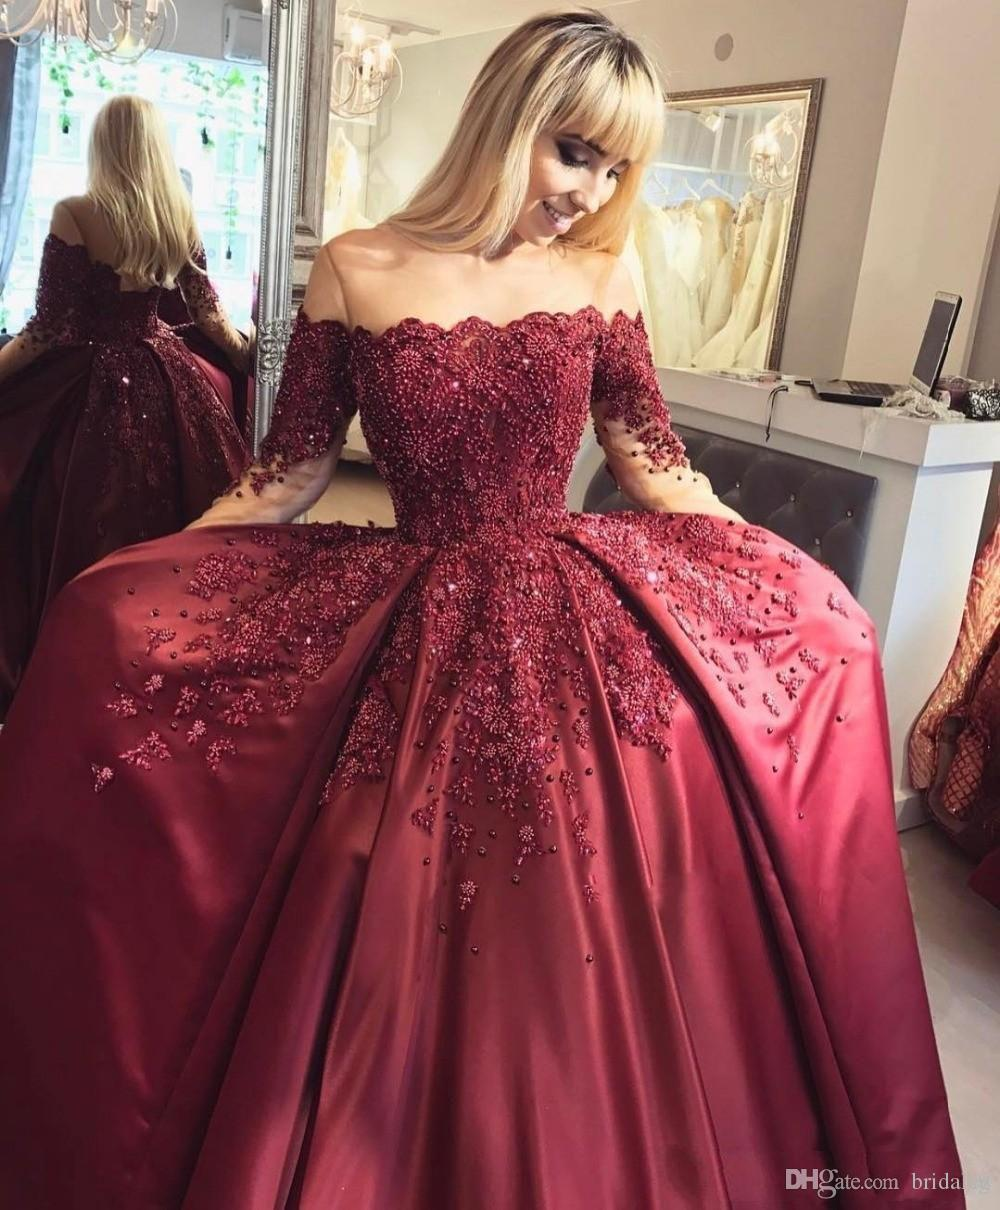 075e2825824b7 Luxury Burgundy Long Sleeve Prom Dresses Wine Red Beaded Ball Gown Formal  Evening Dresses Gowns Lace Up Back Special Occasion Dresses Silver Prom  Dress ...